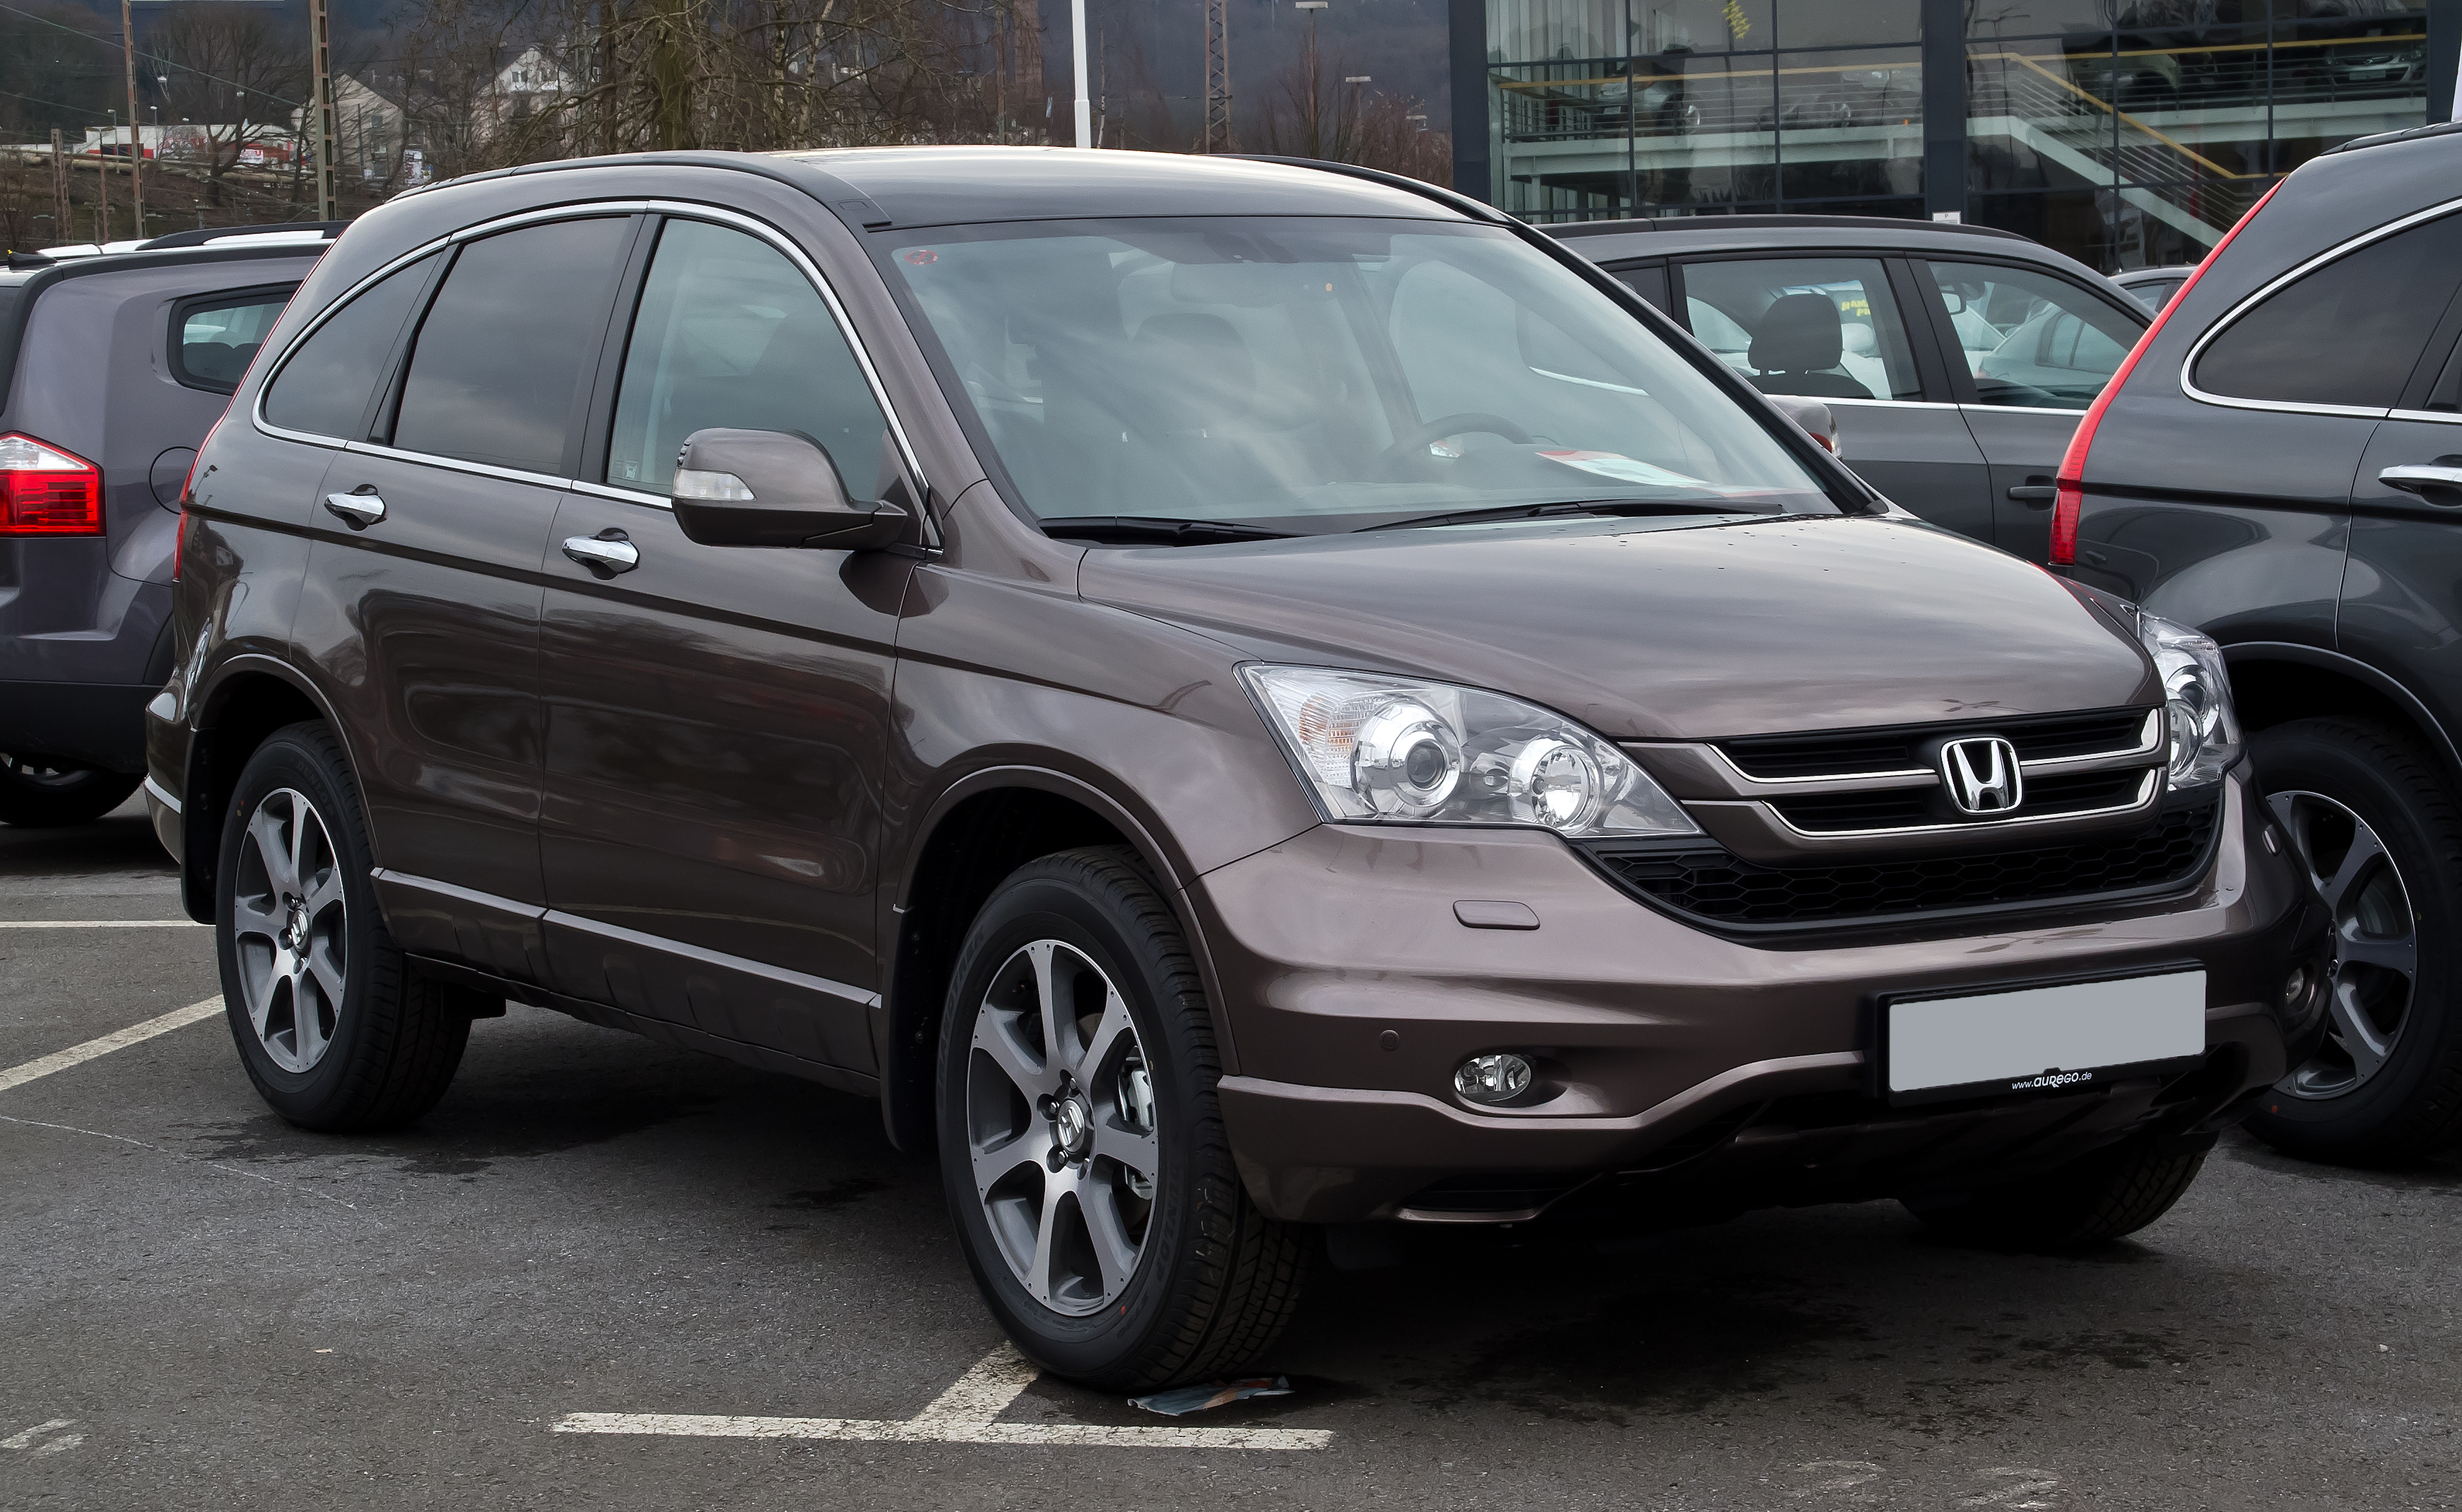 Honda CR-V 2.2 2010 photo - 2